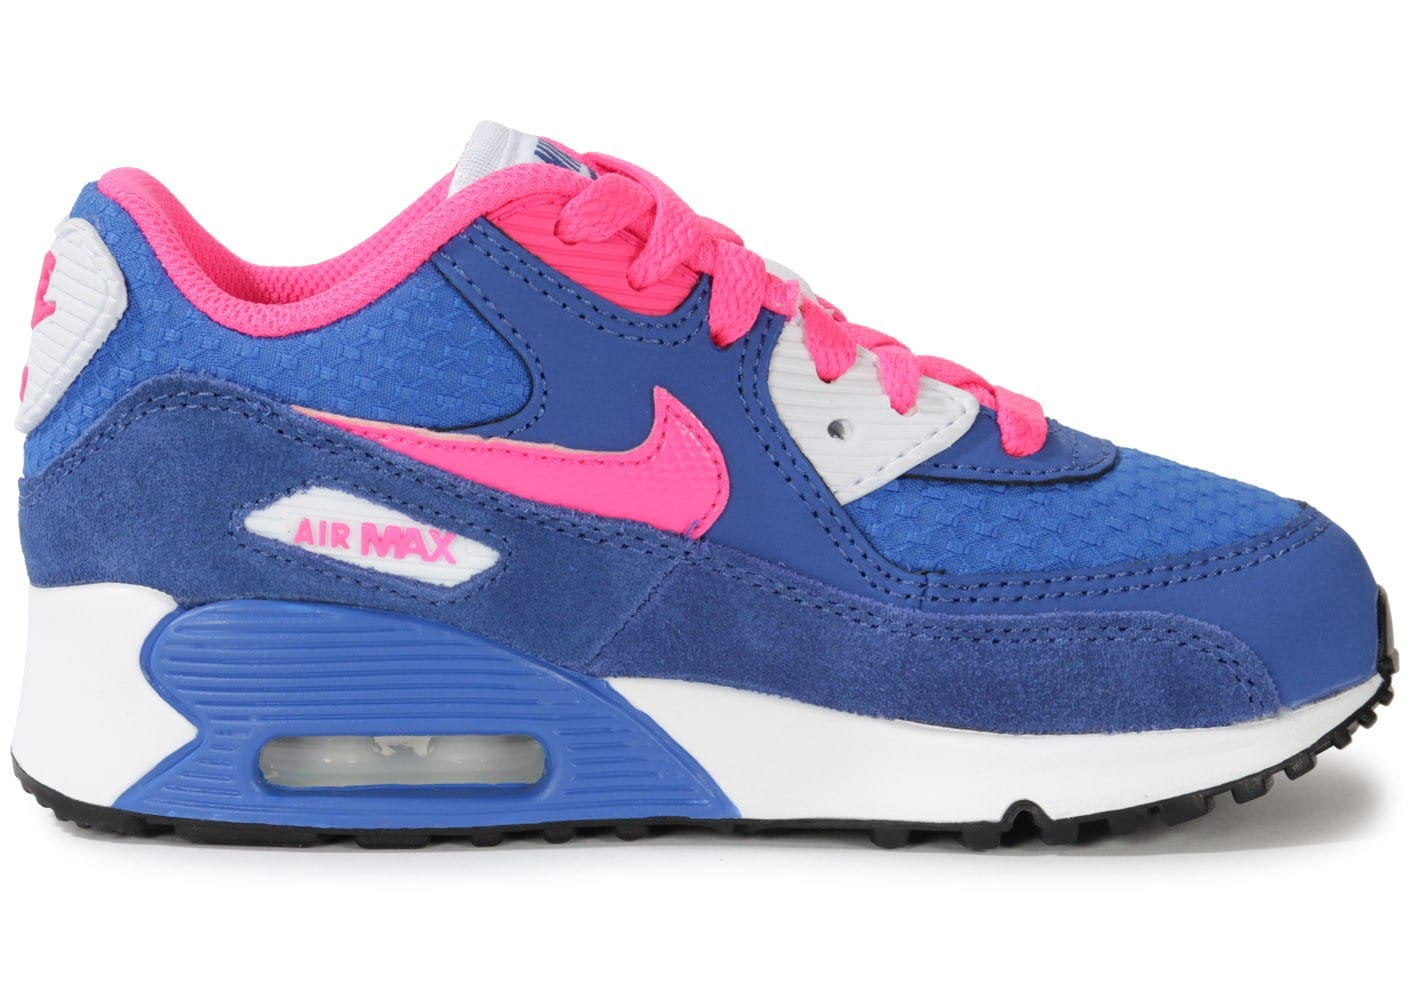 nike air max 90 enfant bleu et rose chaussures chaussures chausport. Black Bedroom Furniture Sets. Home Design Ideas